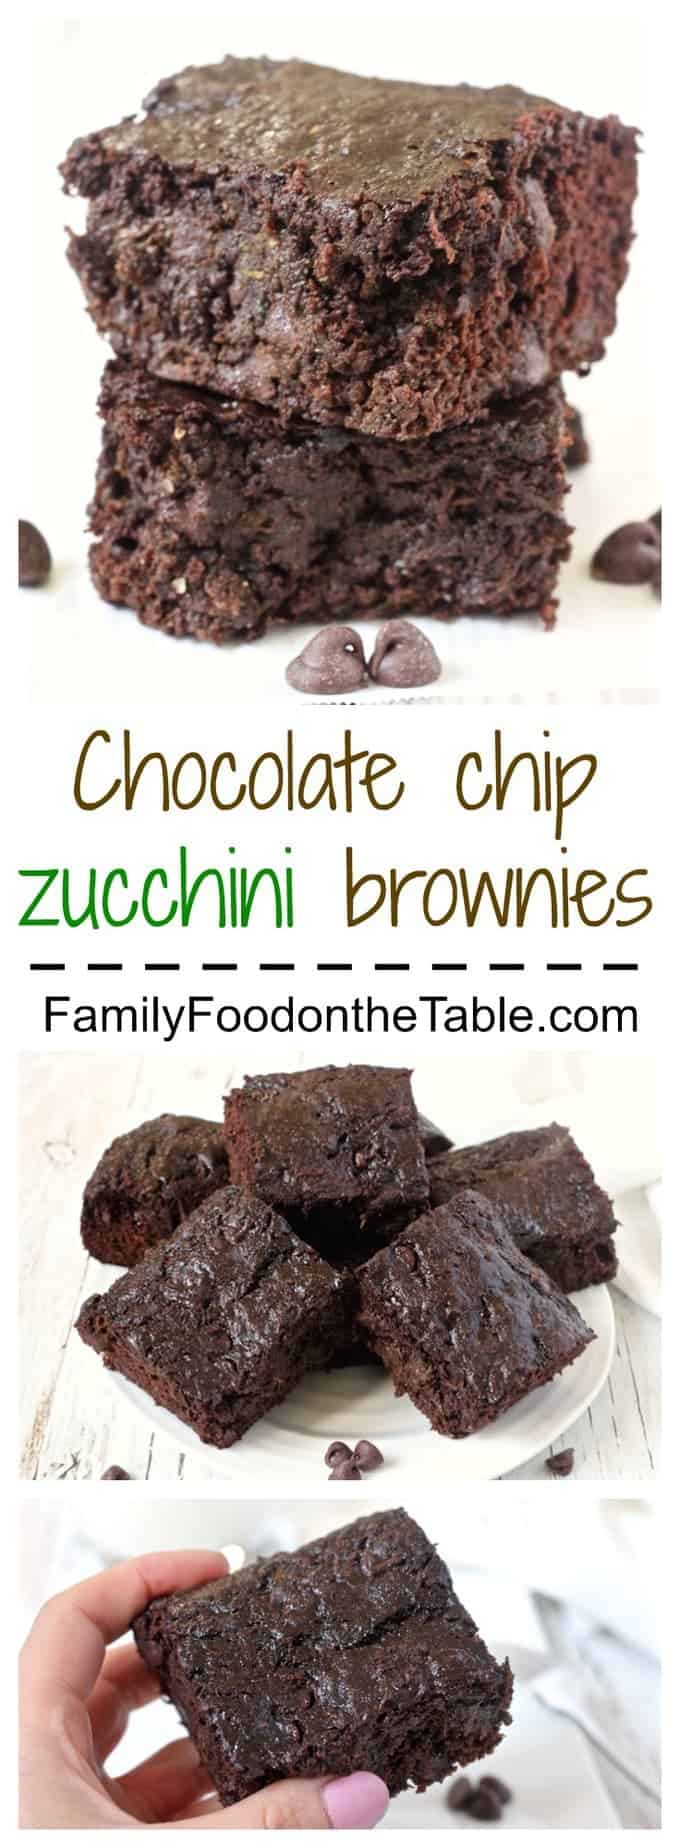 Chocolate chip zucchini brownies are rich, decadent and delicious - but secretly healthy! 100% whole grain and loaded with veggies! | www.familyfoodonthetable.com